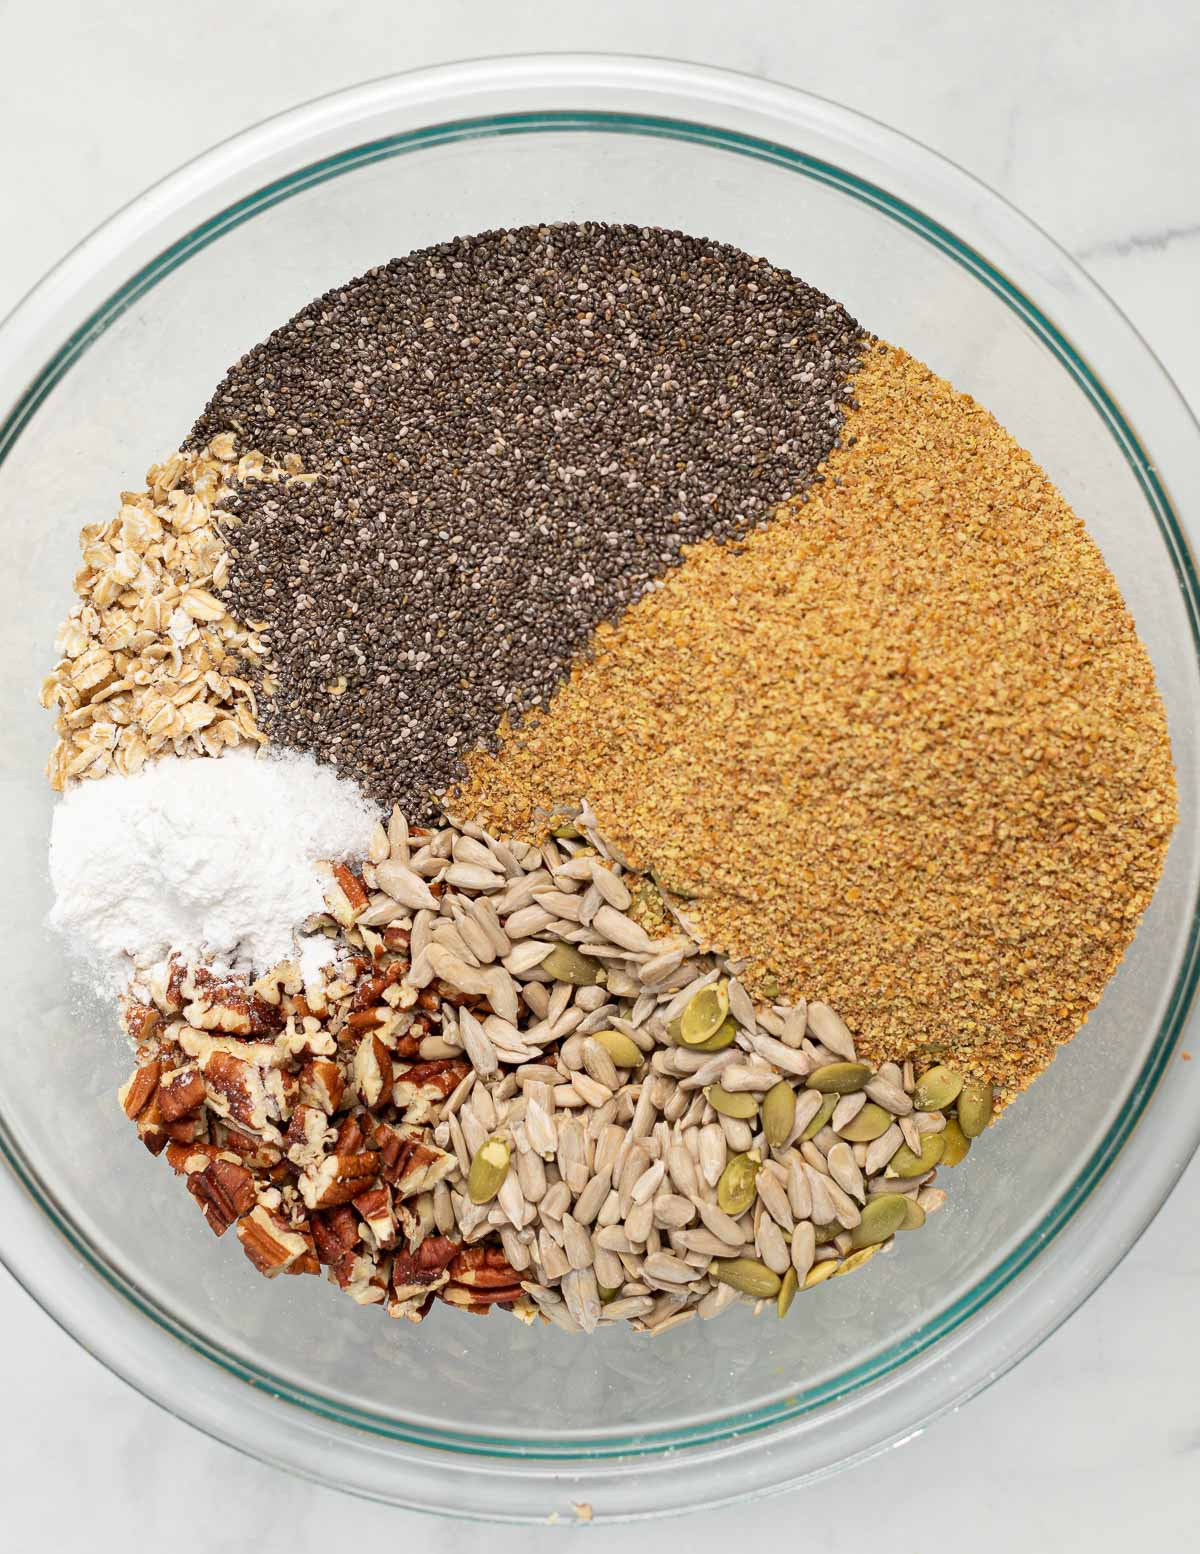 dry ingredients for gluten-free seed bread in a bowl